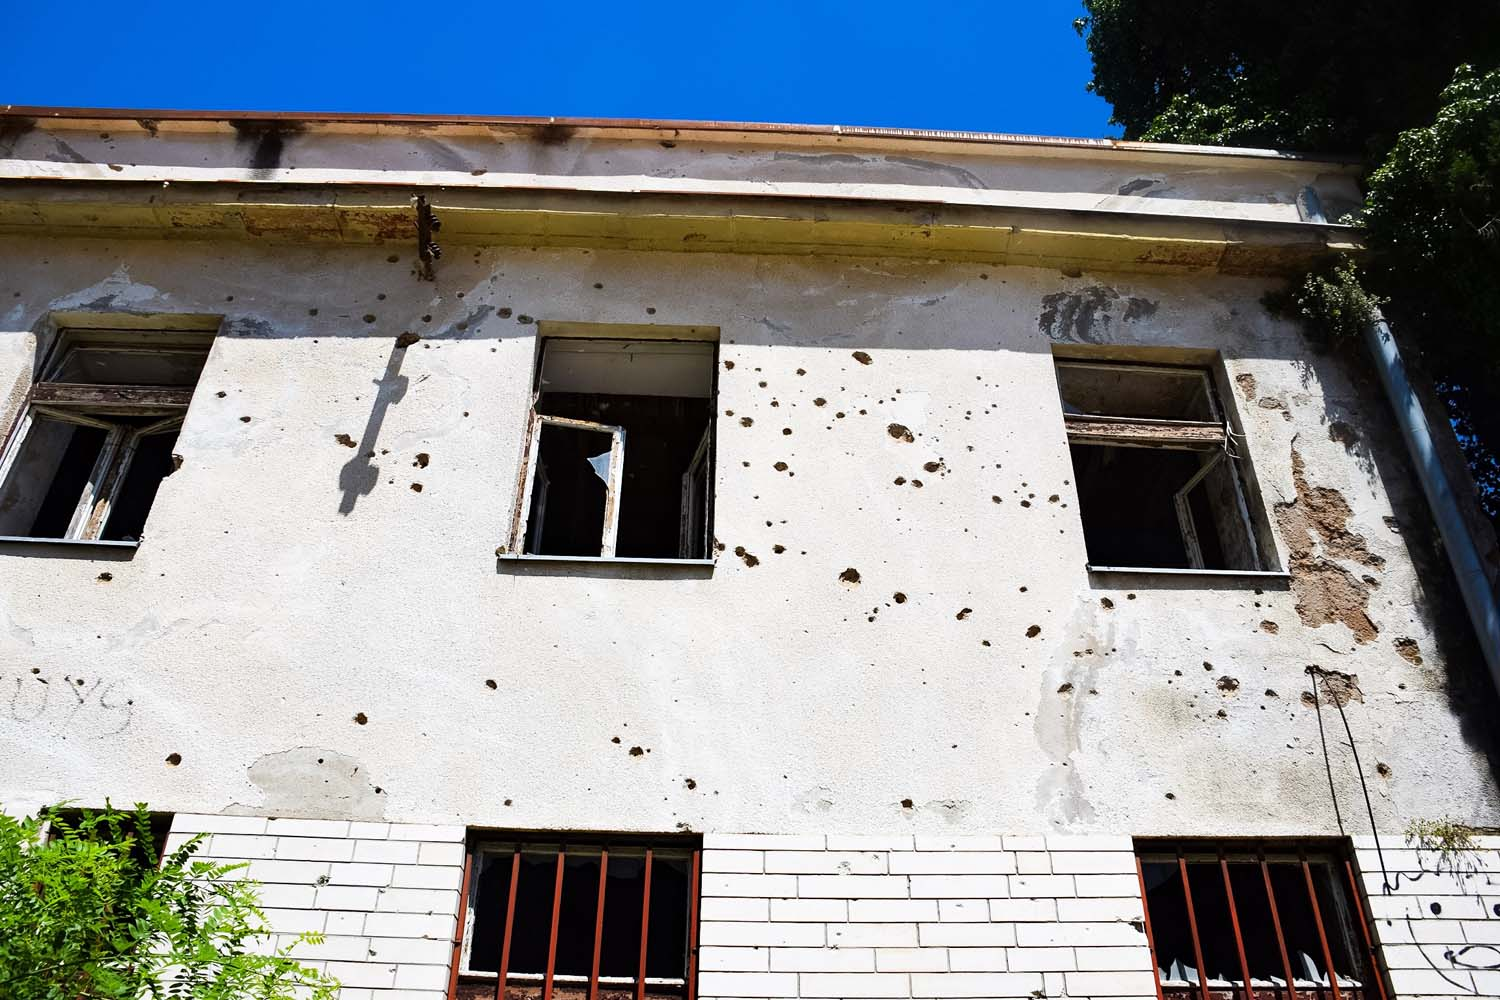 bullet holes in buildings around mostar